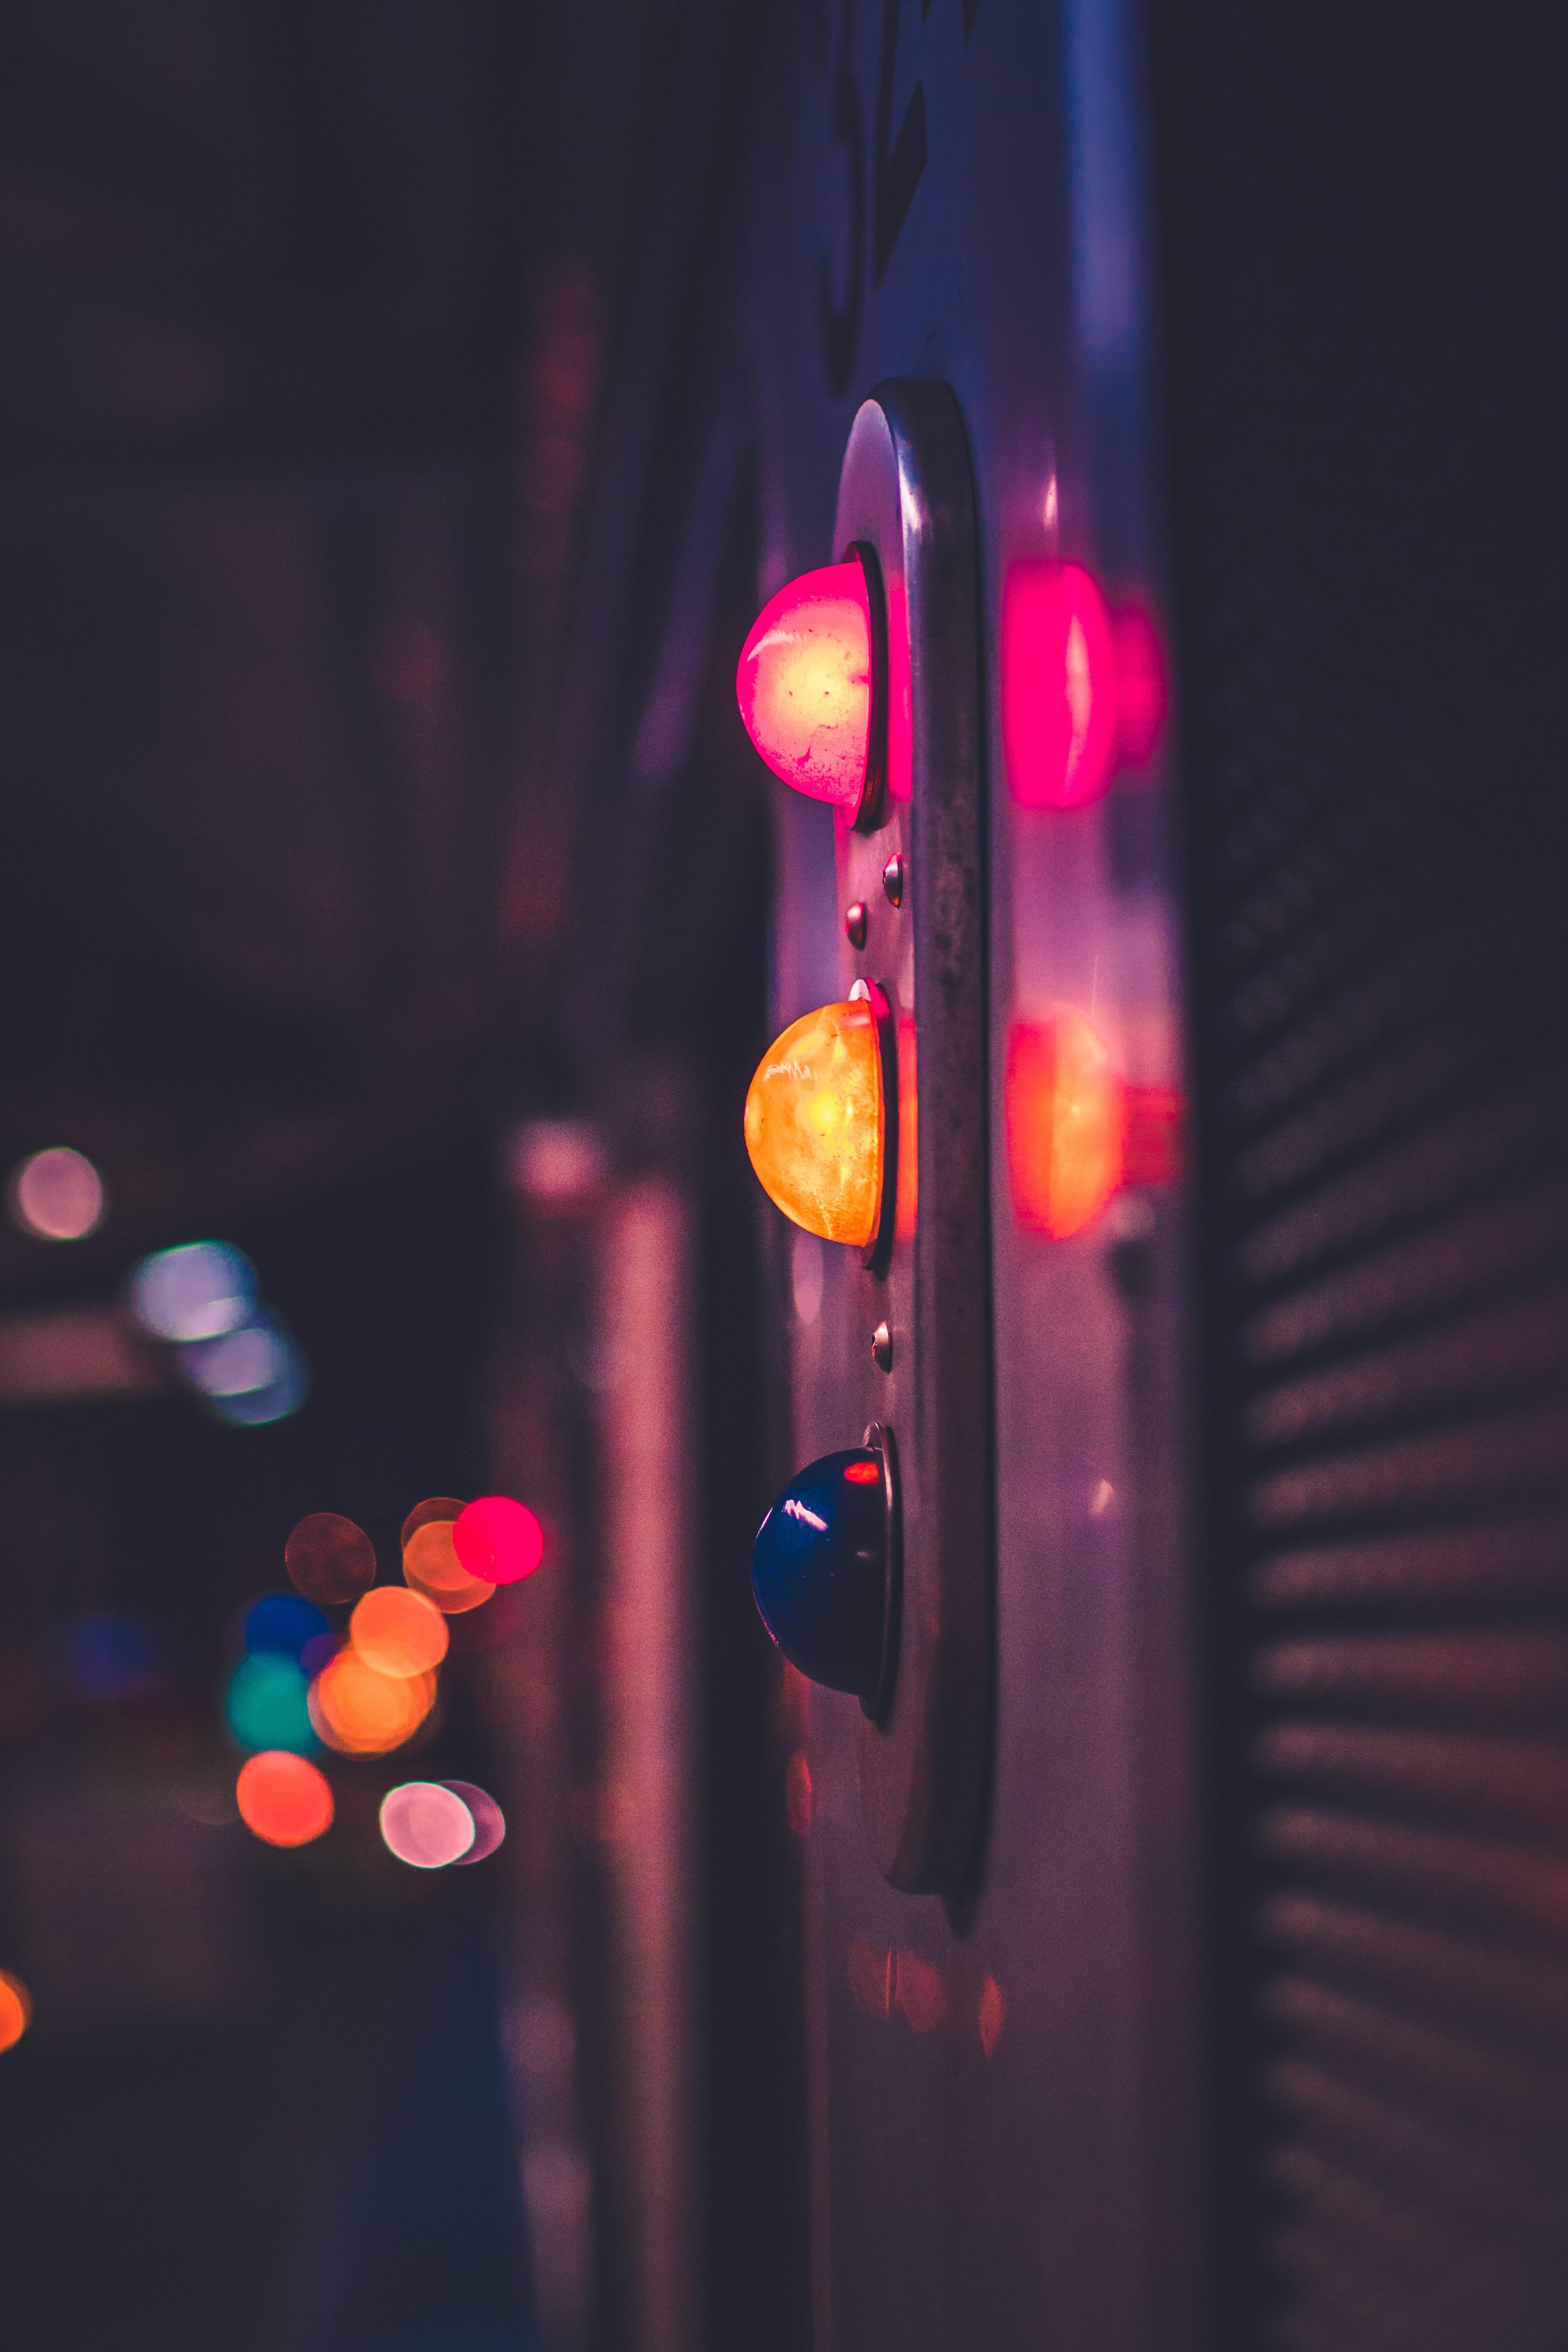 selective focus photography of traffic lights